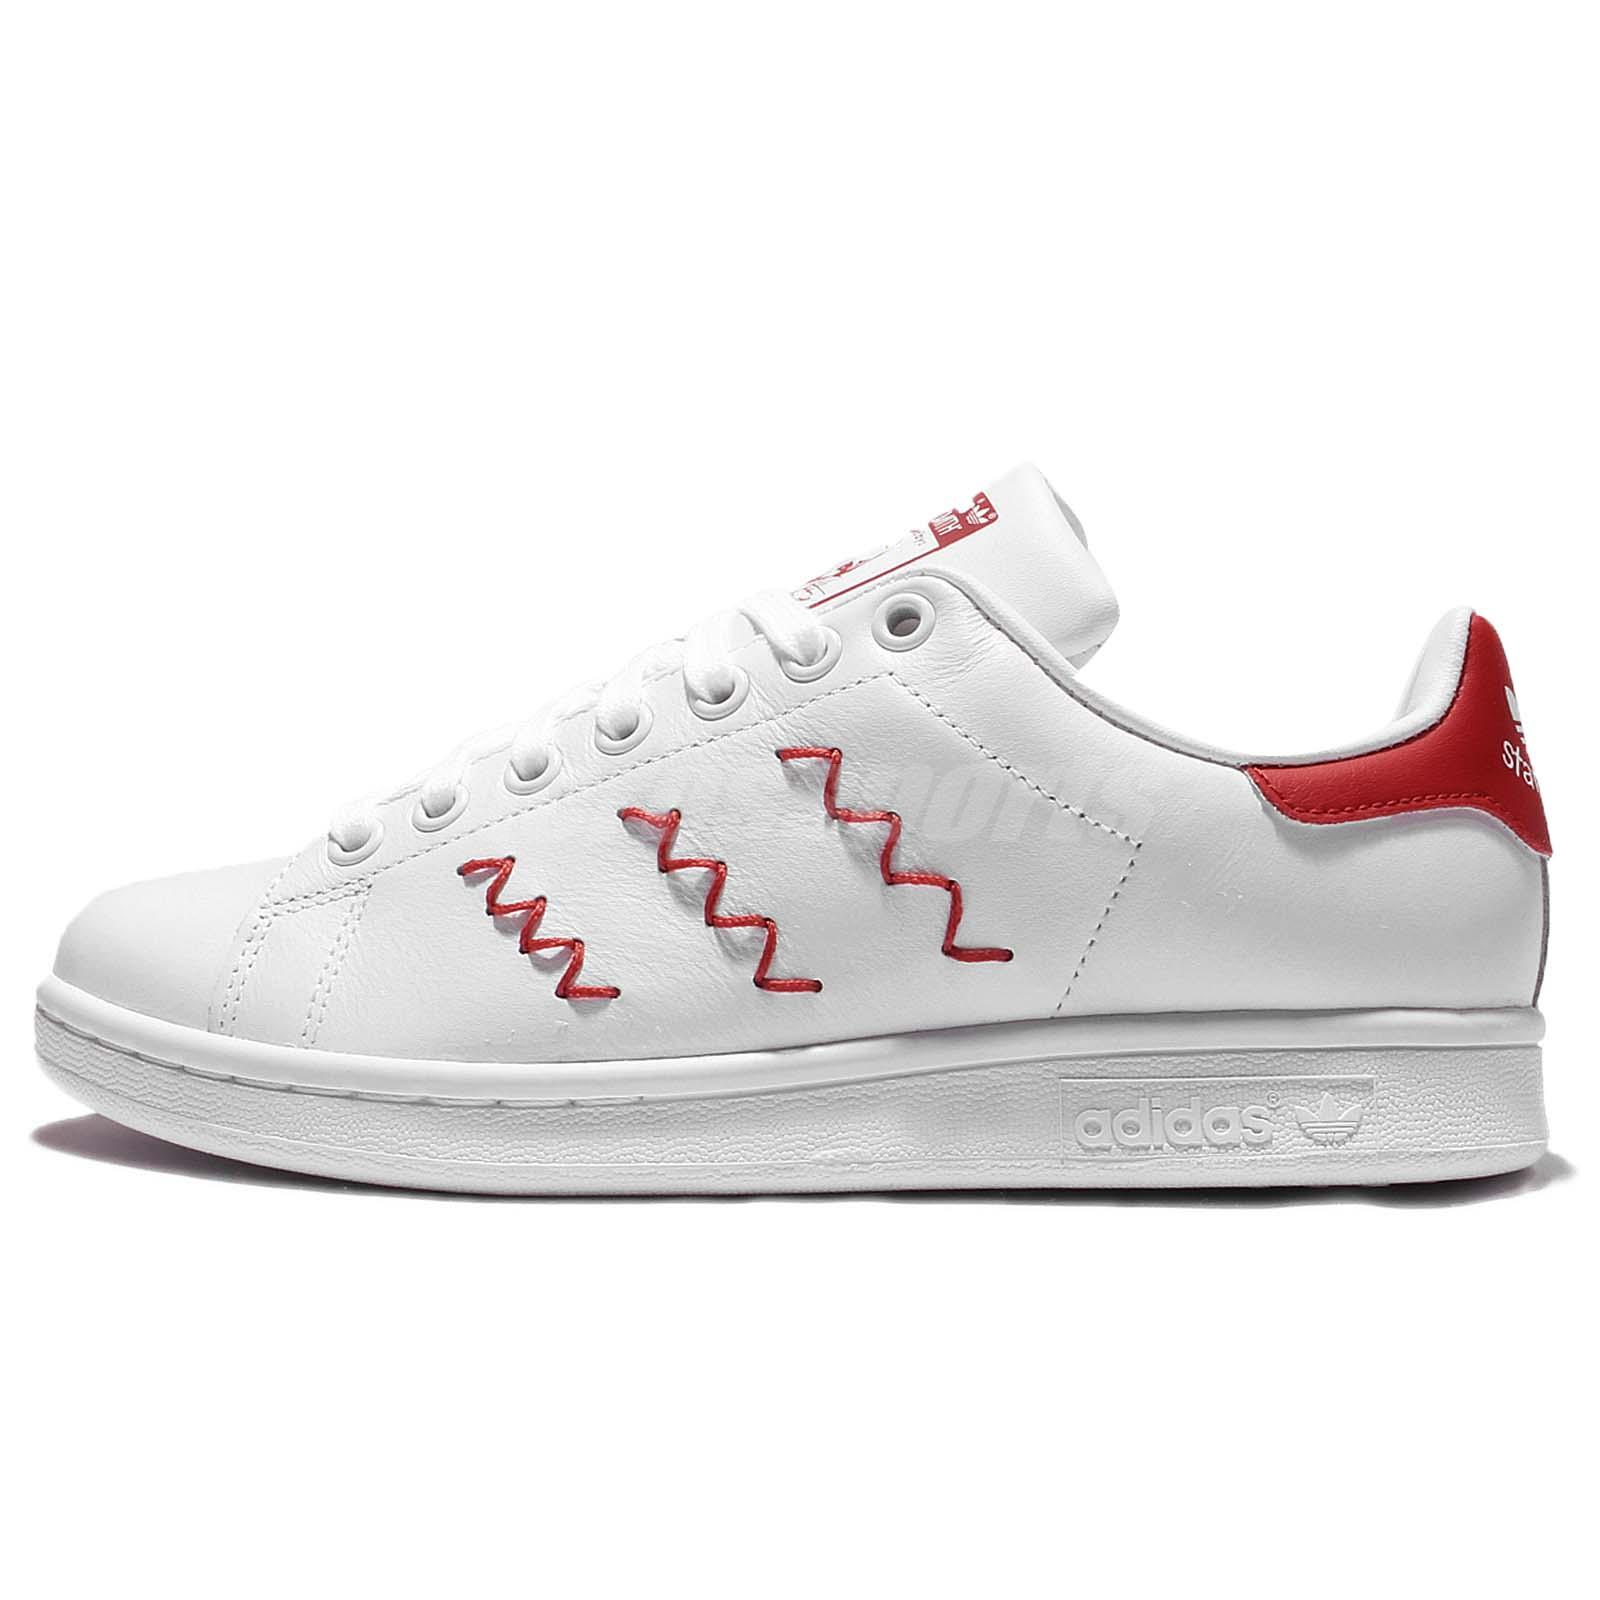 Buy stan smith adidas trainers > OFF76% Discounted